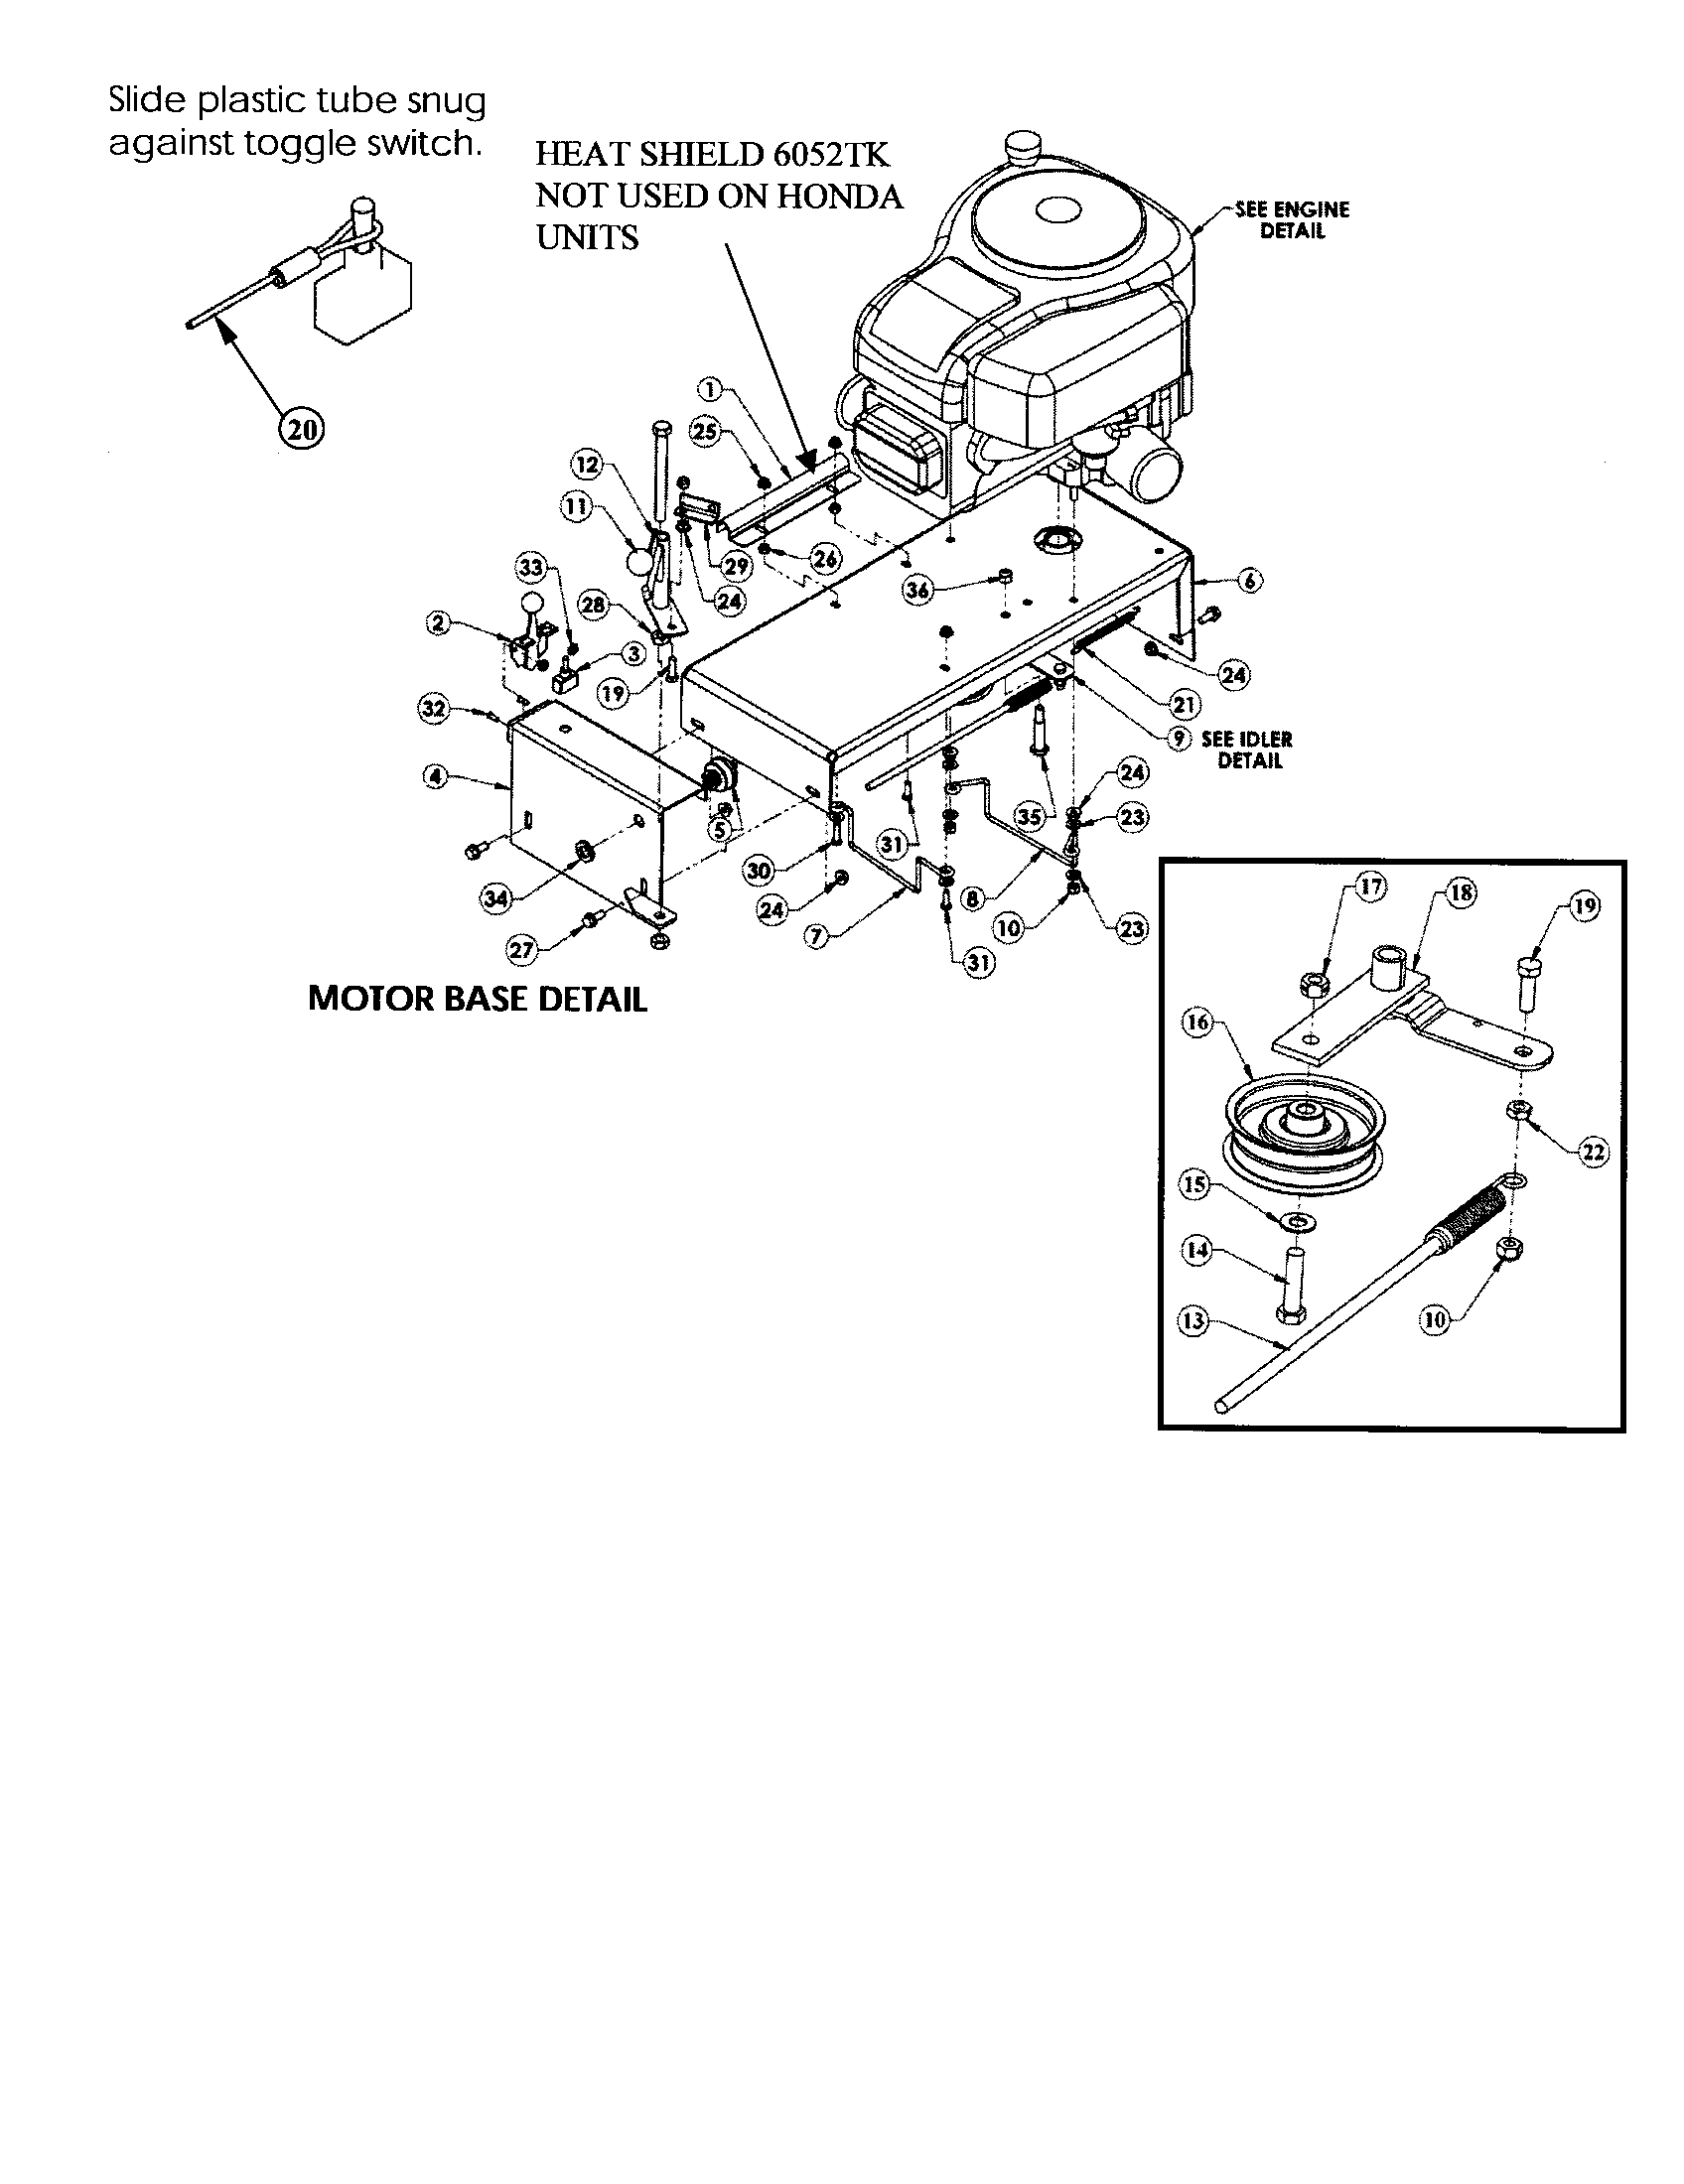 DIAGRAM] Swisher T1260 Mower Wiring Diagram FULL Version HD Quality Wiring  Diagram - WATERDIAGRAM.SILVI-TRIMMINGS.ITSilvi-trimmings.it